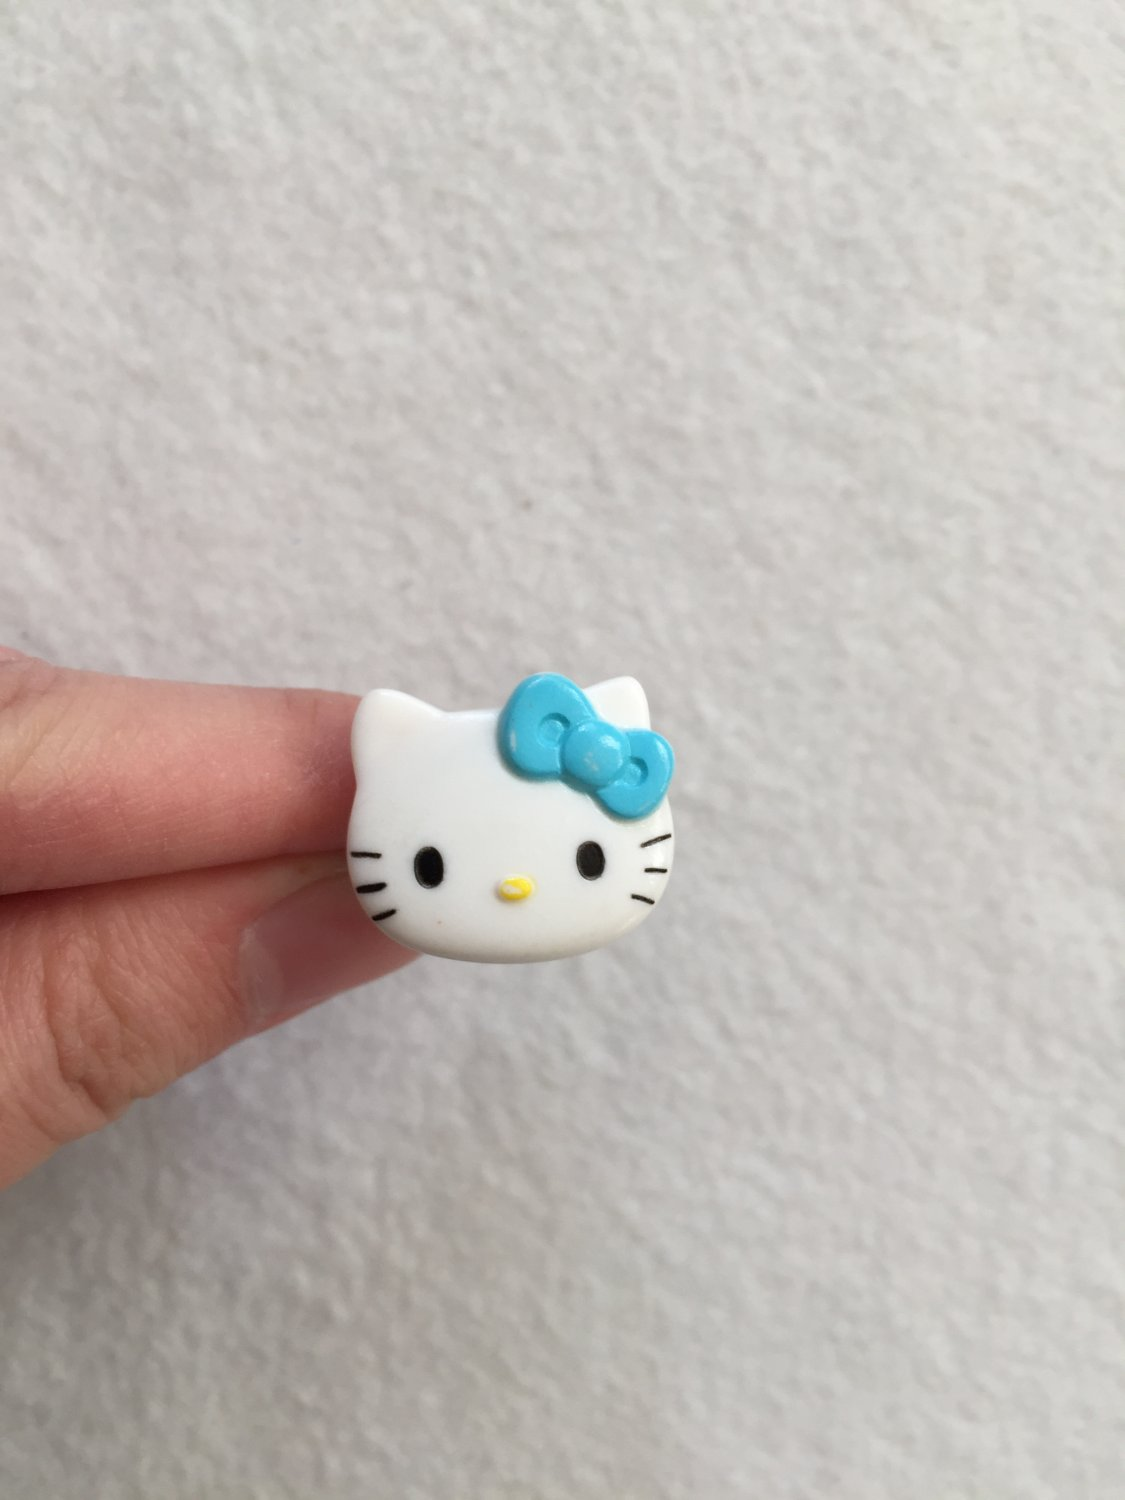 Sanrio Blue Hello Kitty with Bird Stamp Ring